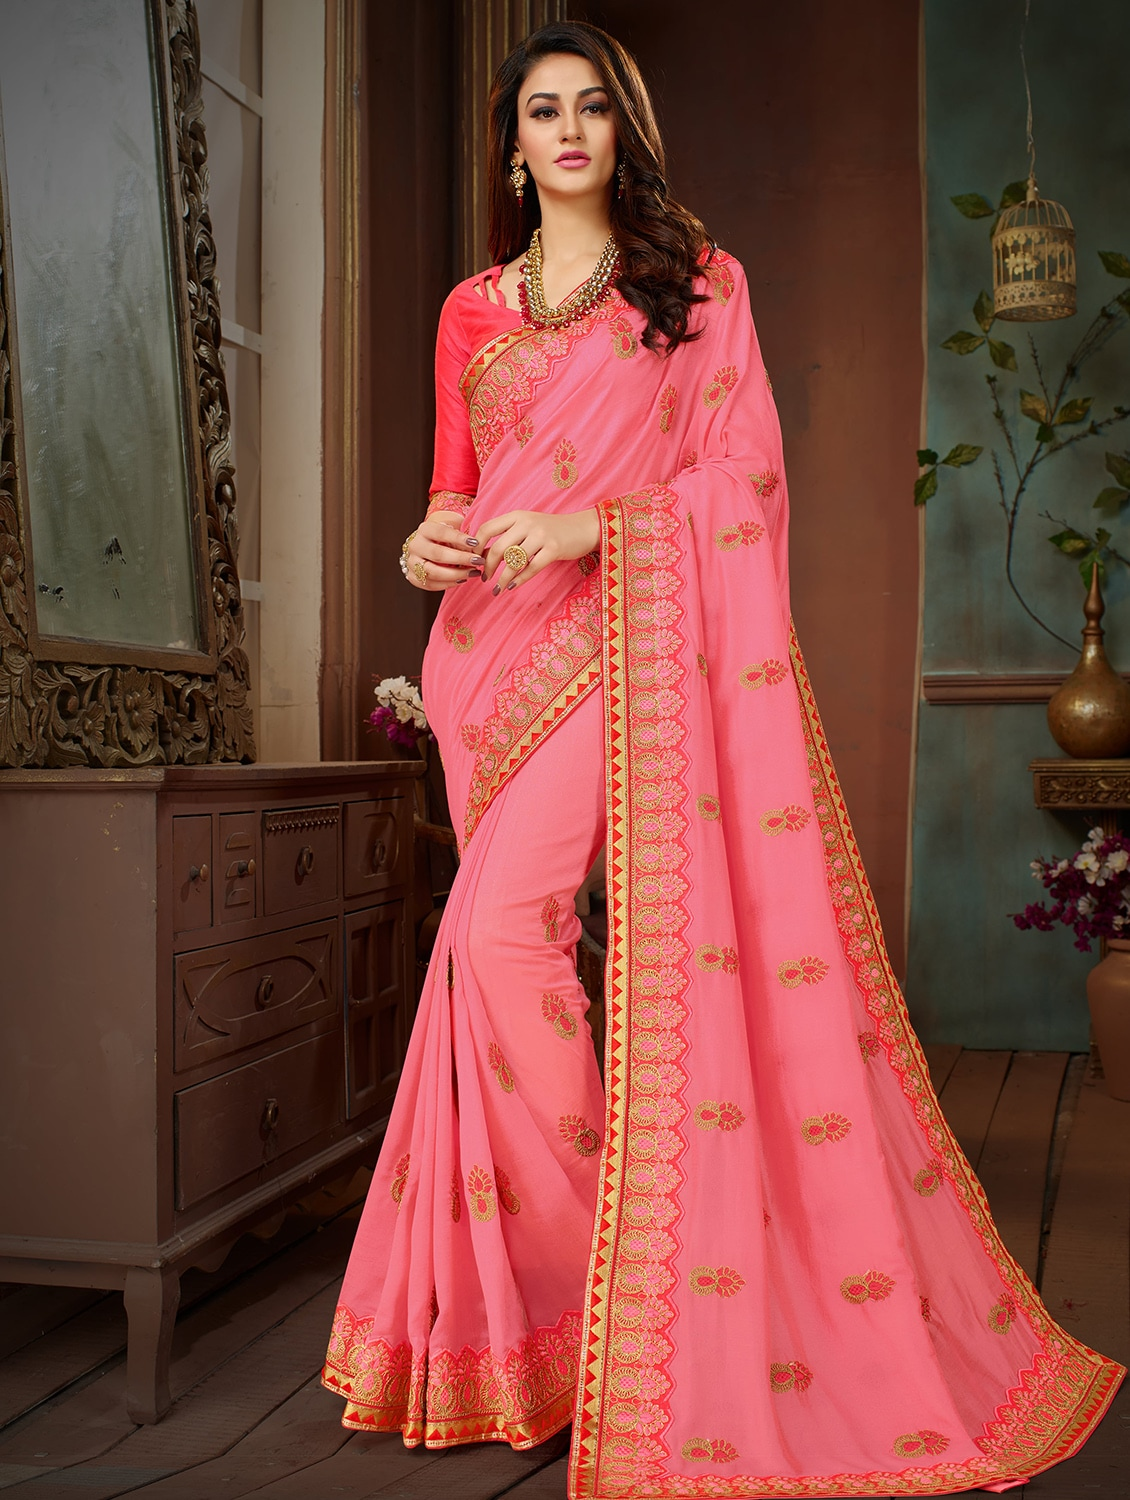 e58a5c9e2 Embroidered Pink Saree With Blouse